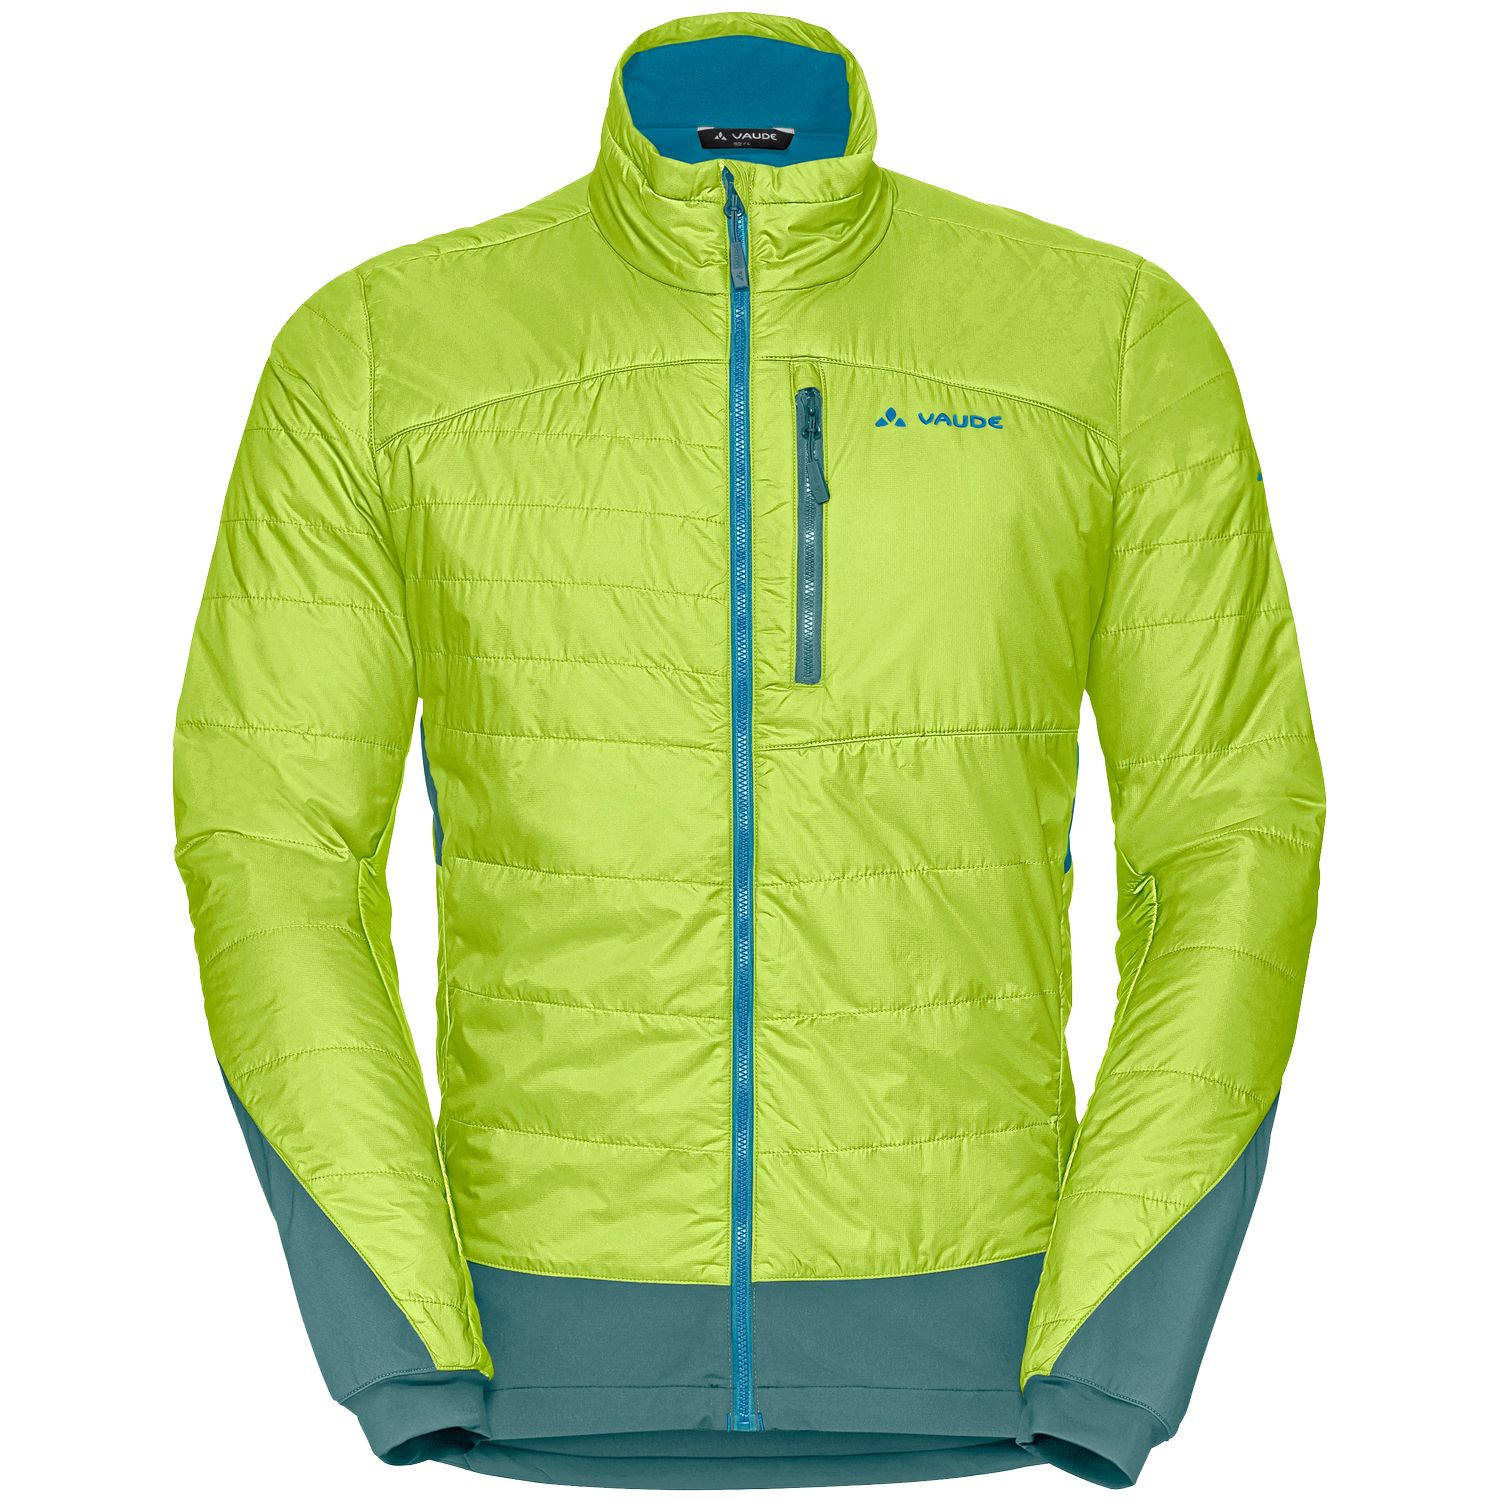 timeless design f3a76 28ffa Men MINAKI Jacket II thermo chute green